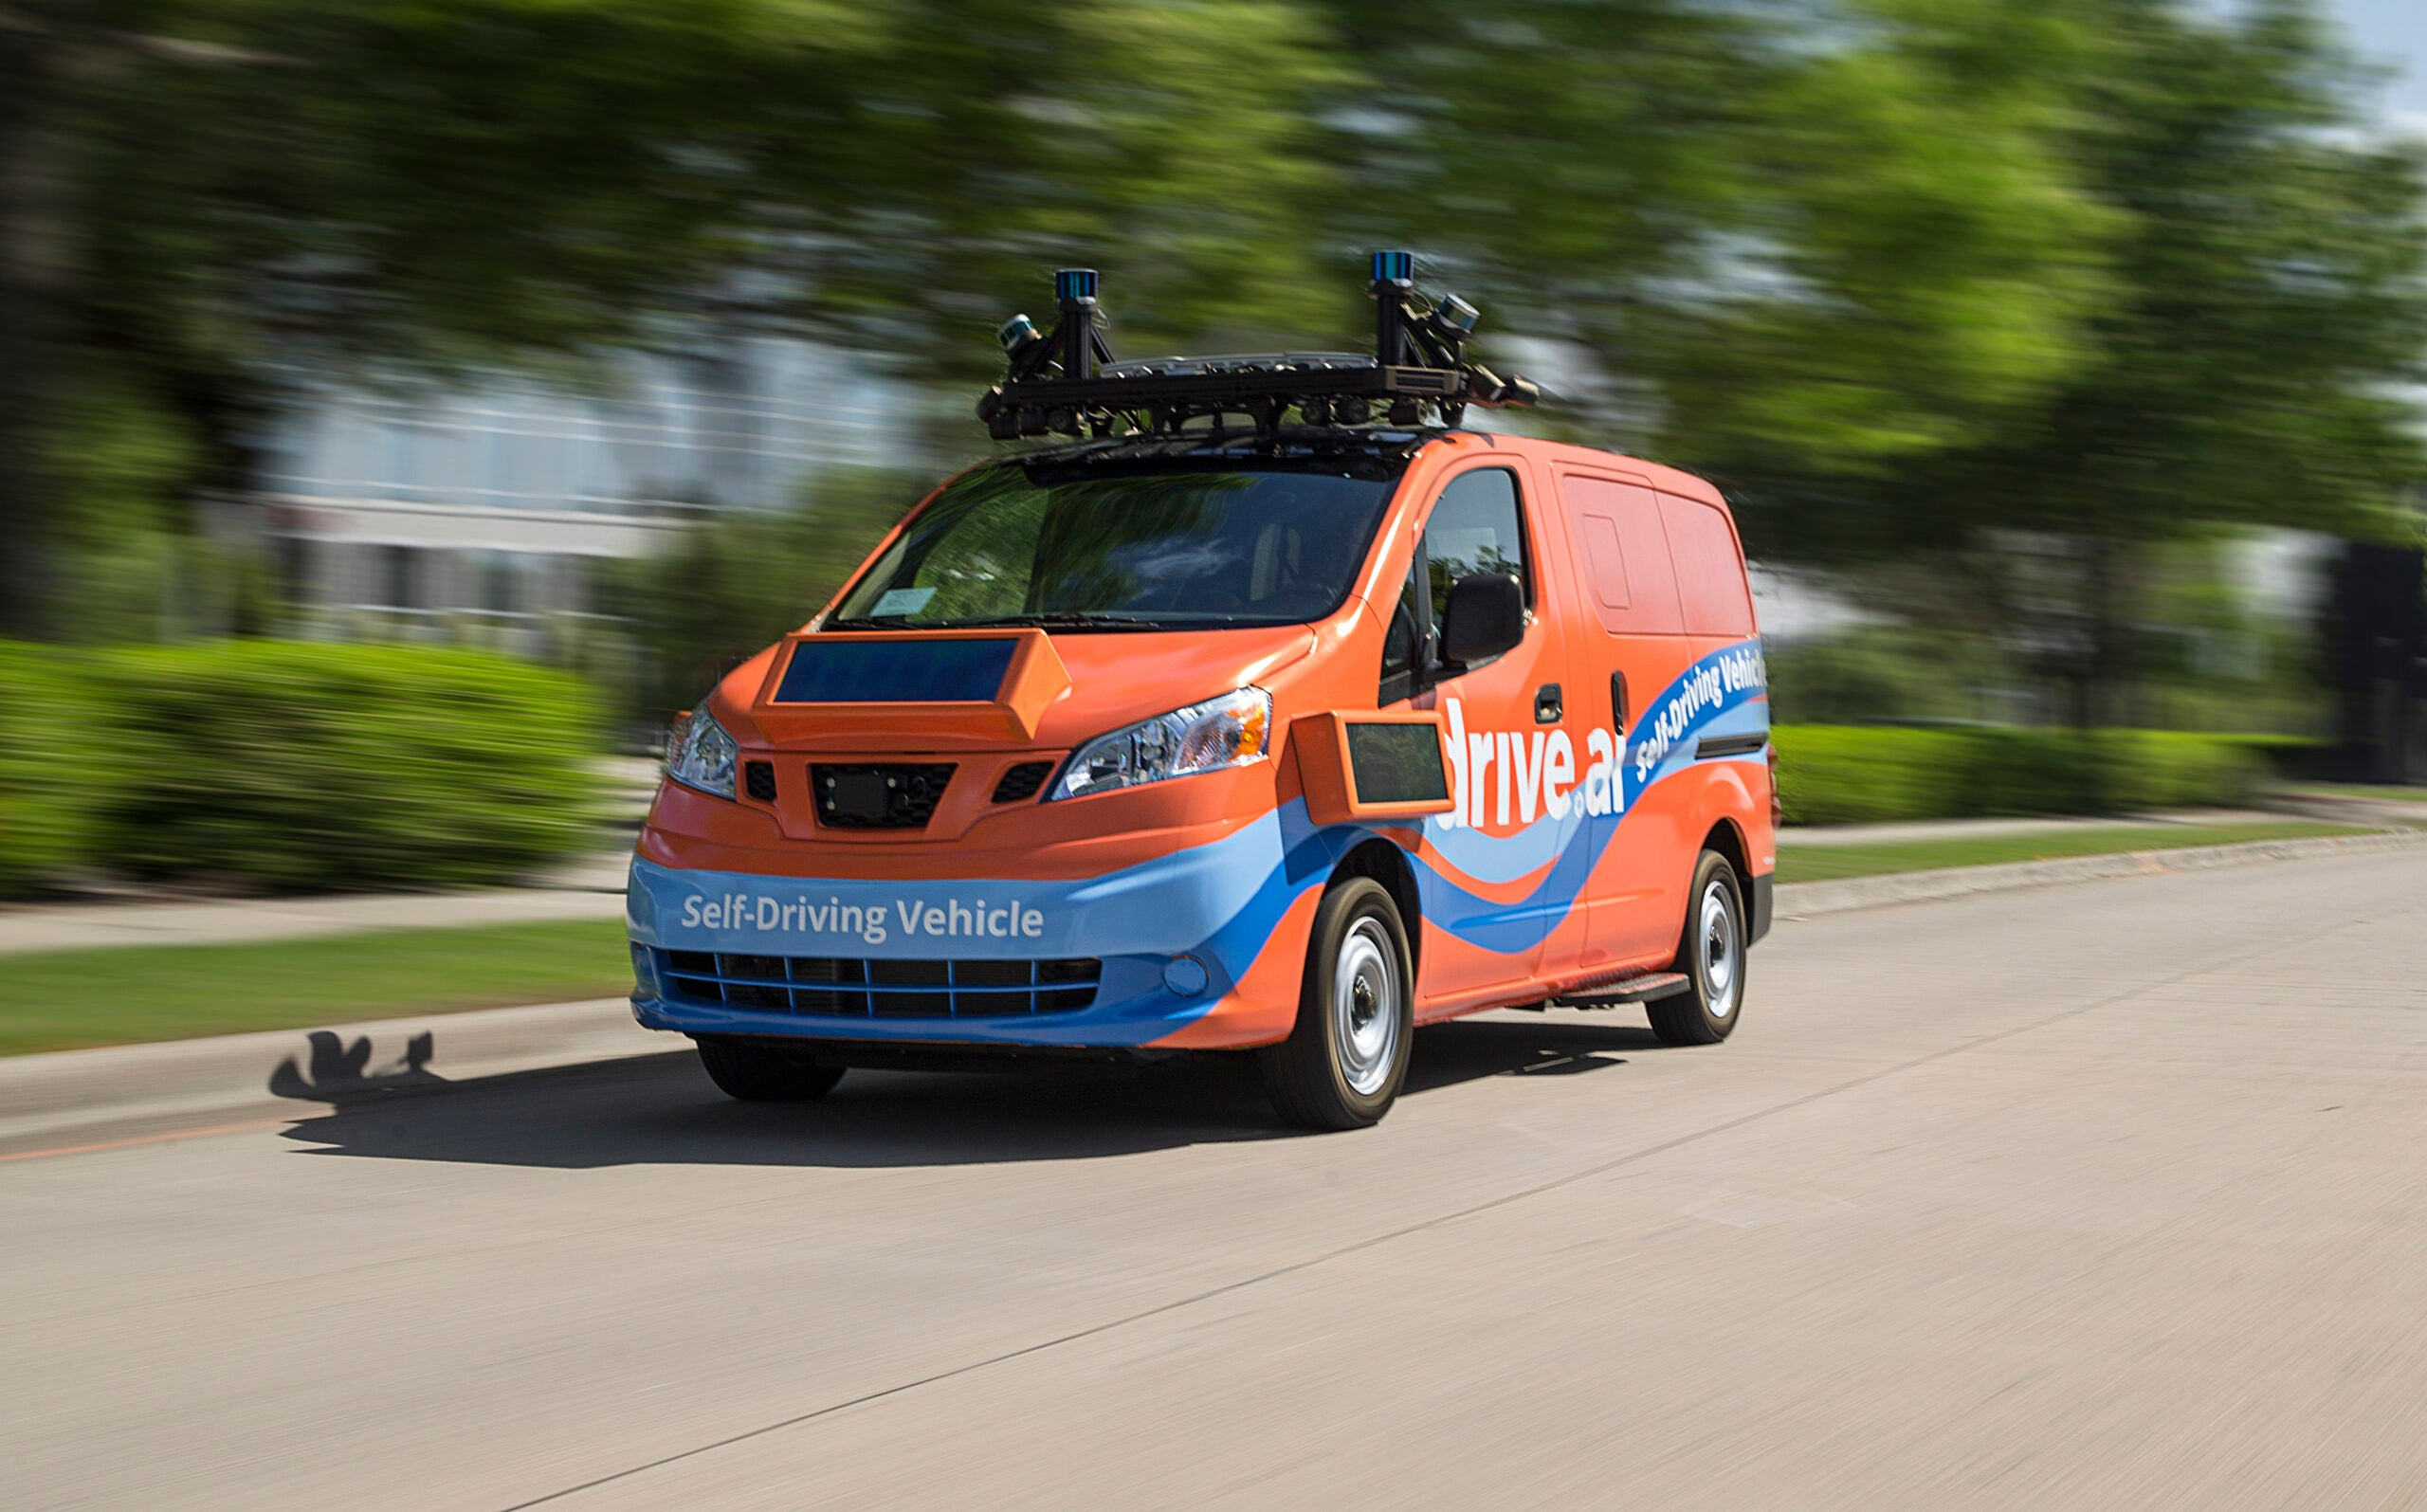 Self-driving car companies are racking up simulated miles. Here's why.